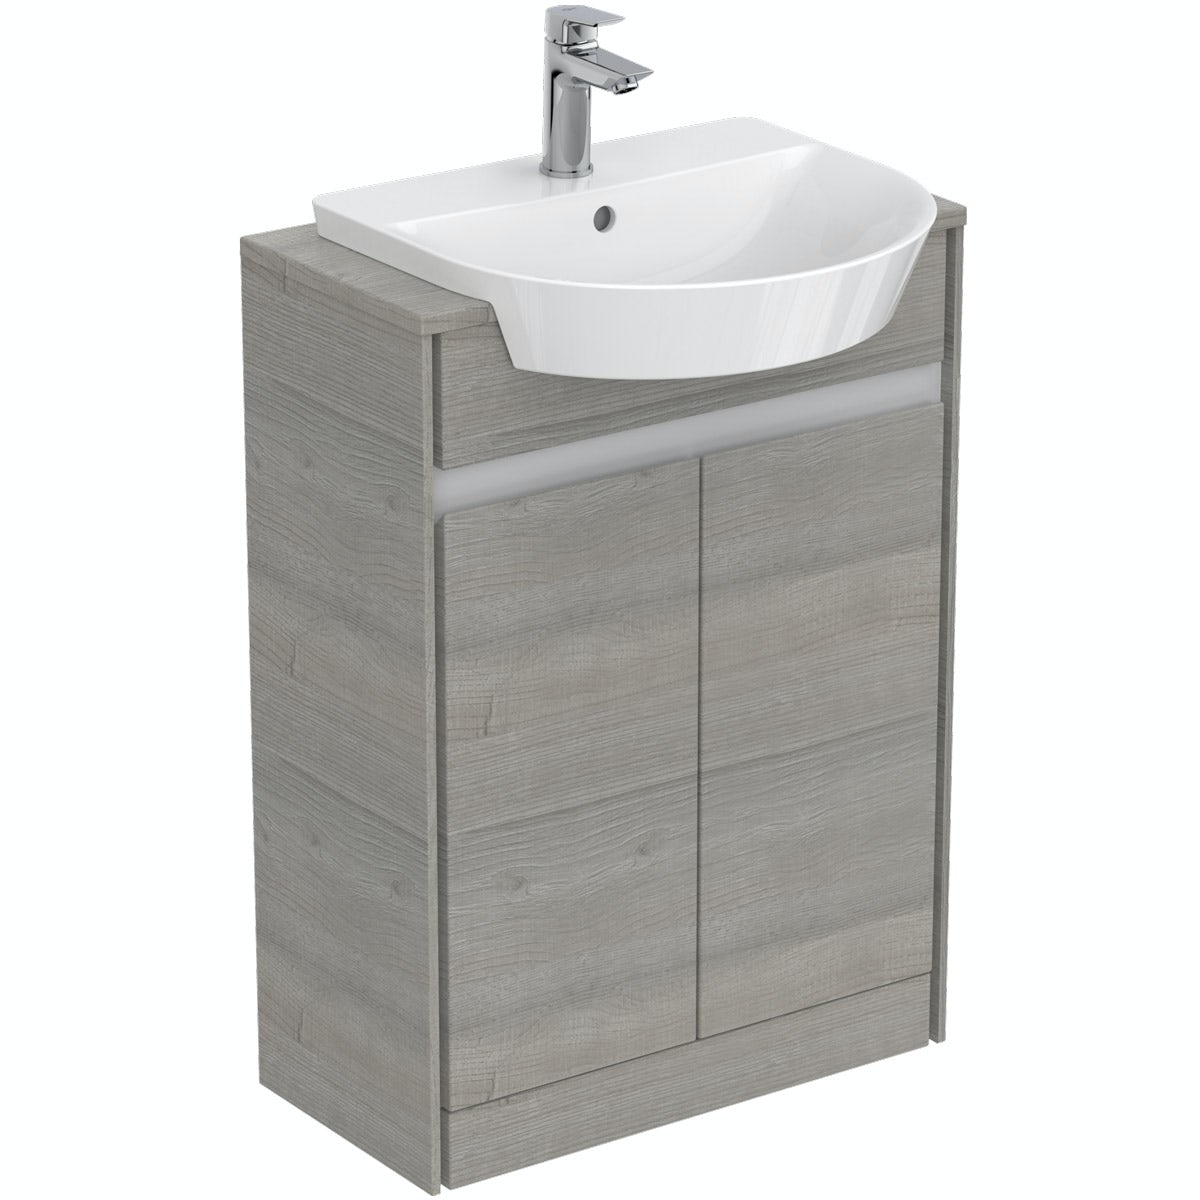 Ideal Standard Concept Air wood light grey and matt white wall hung vanity unit and recessed  basin 600mm